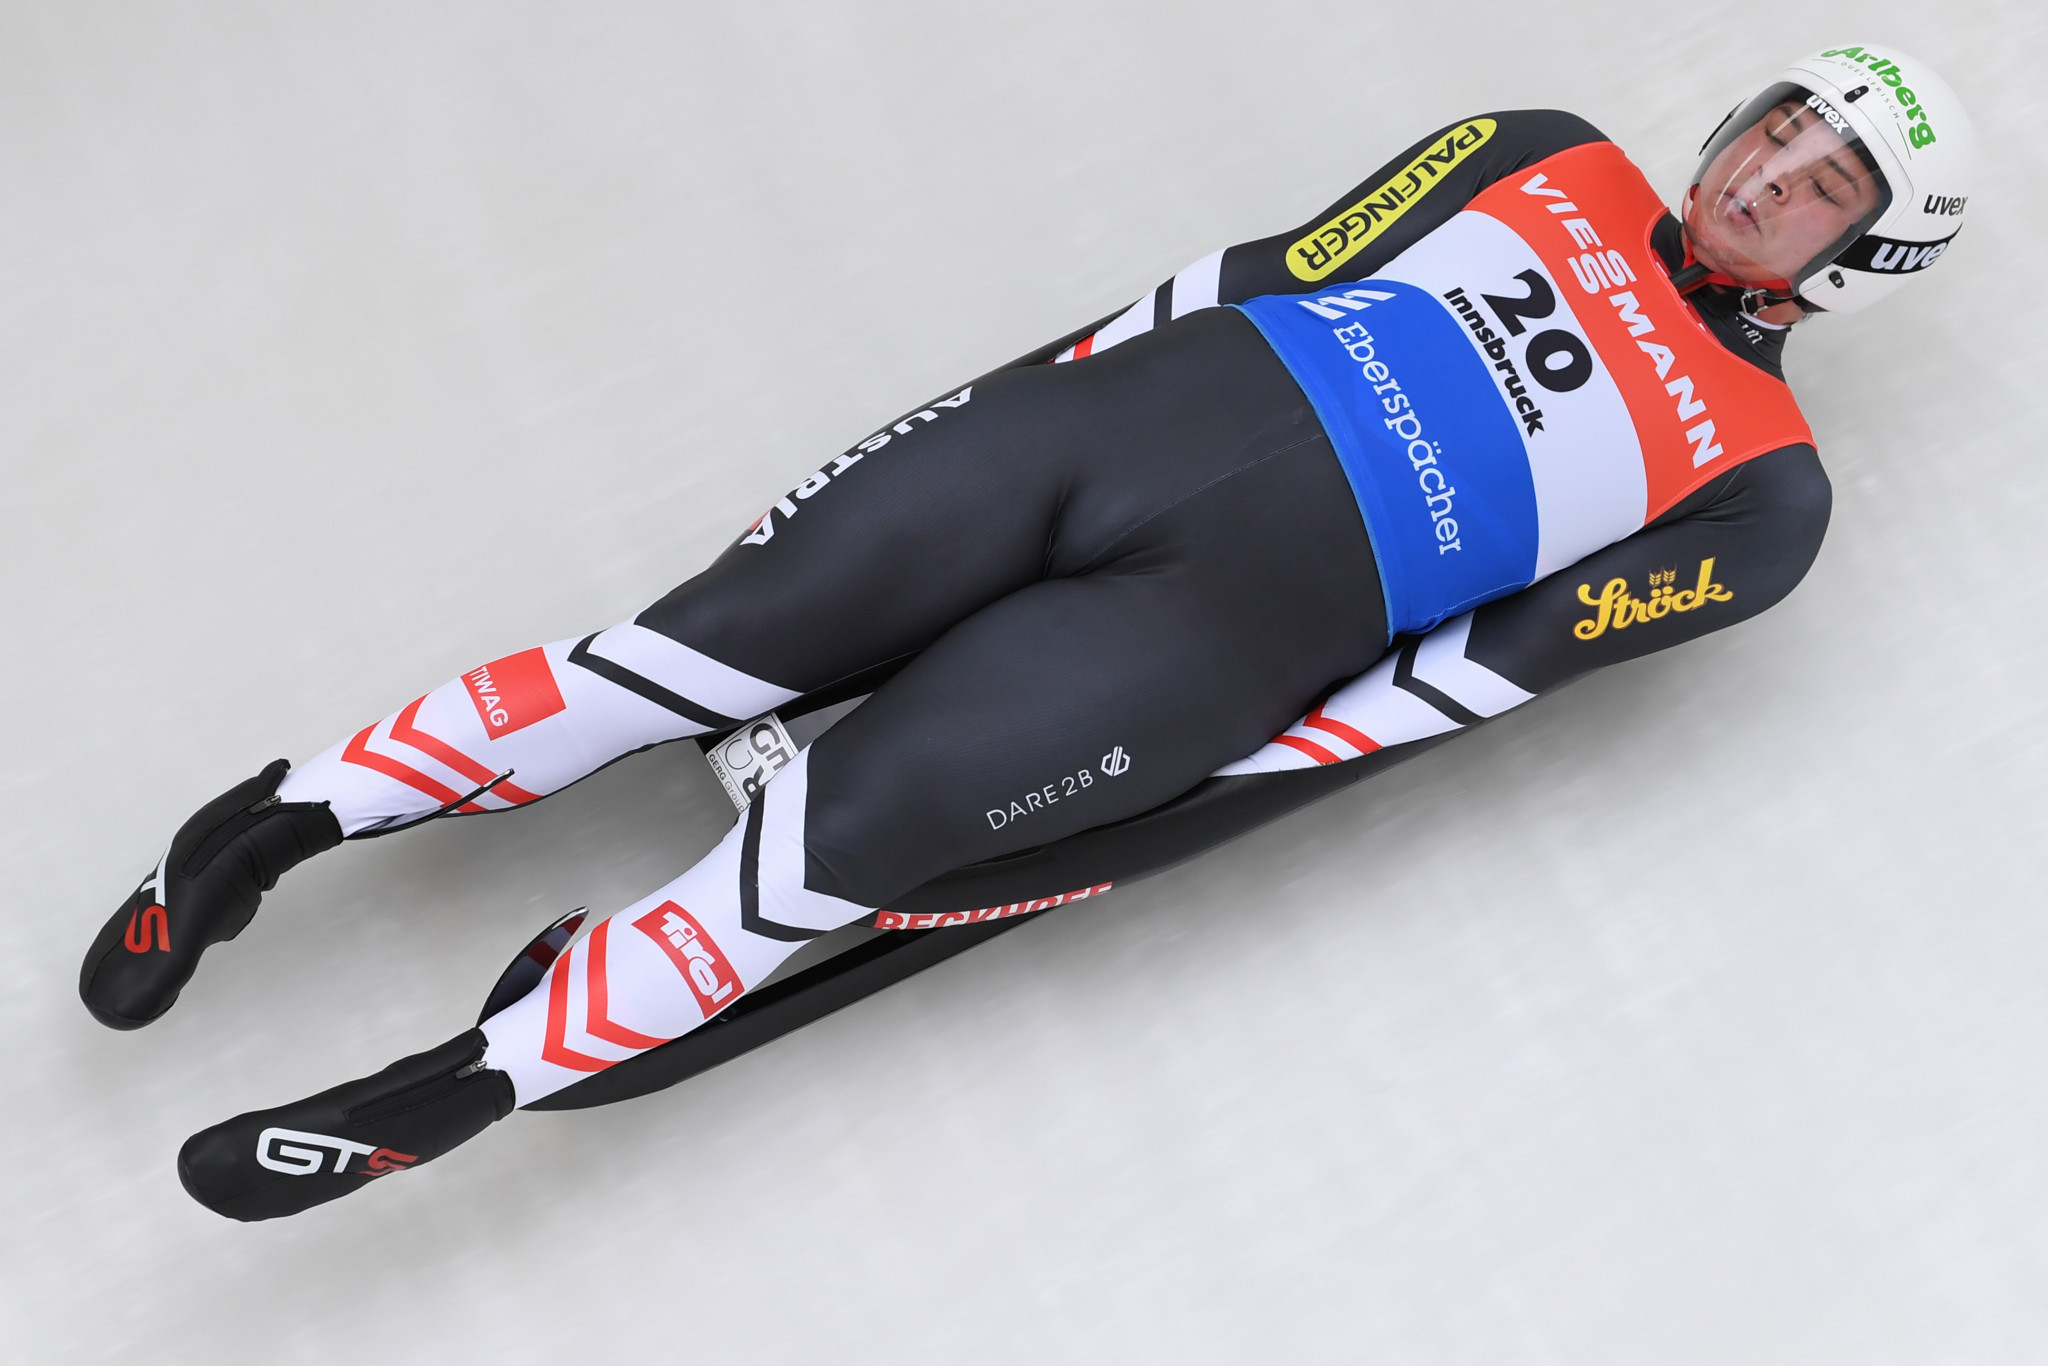 Müller wins opening men's event of Luge World Cup season